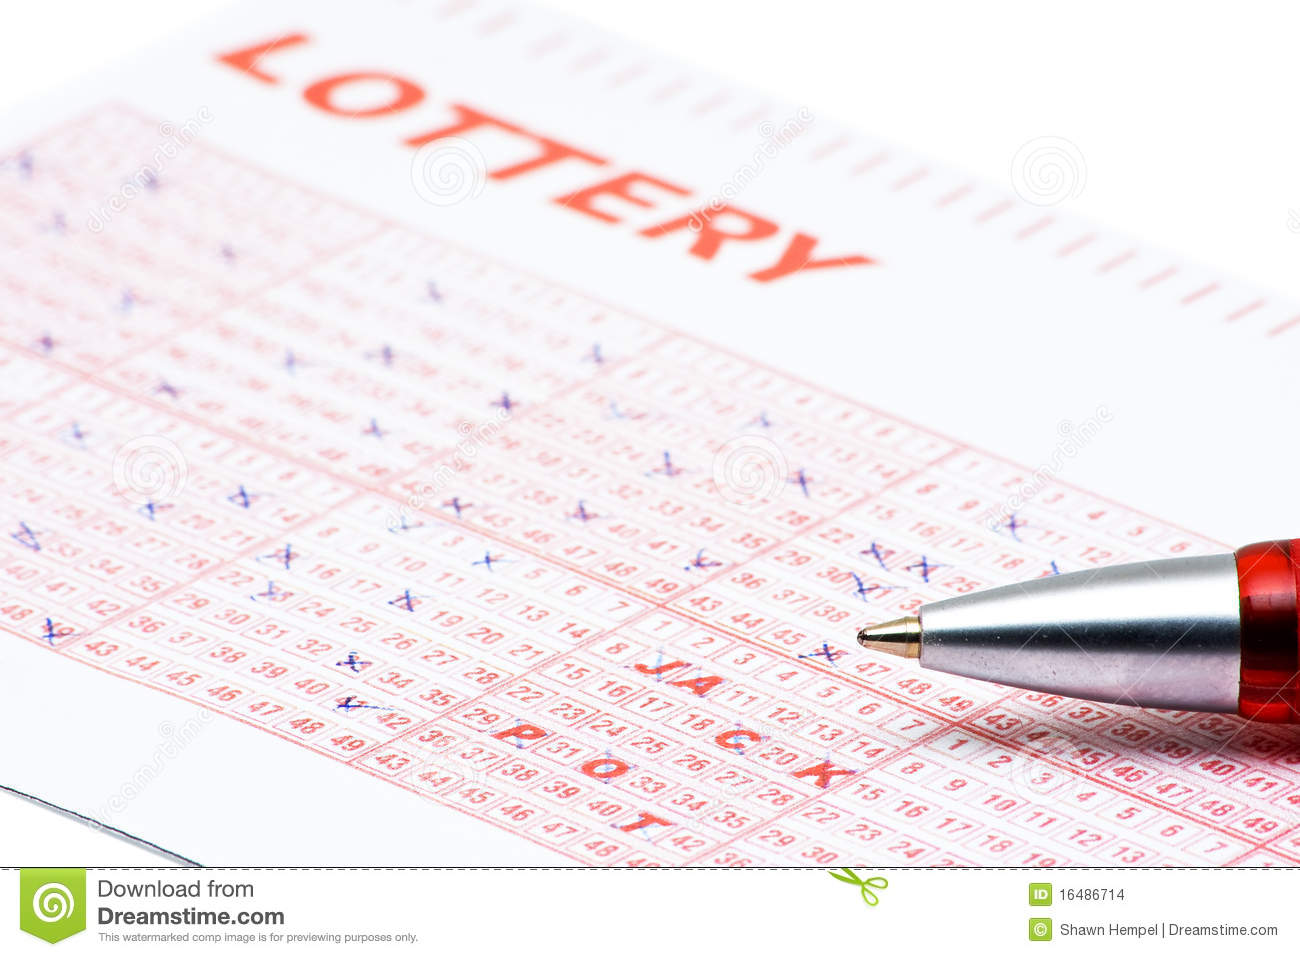 how to get lottery numbers in dream